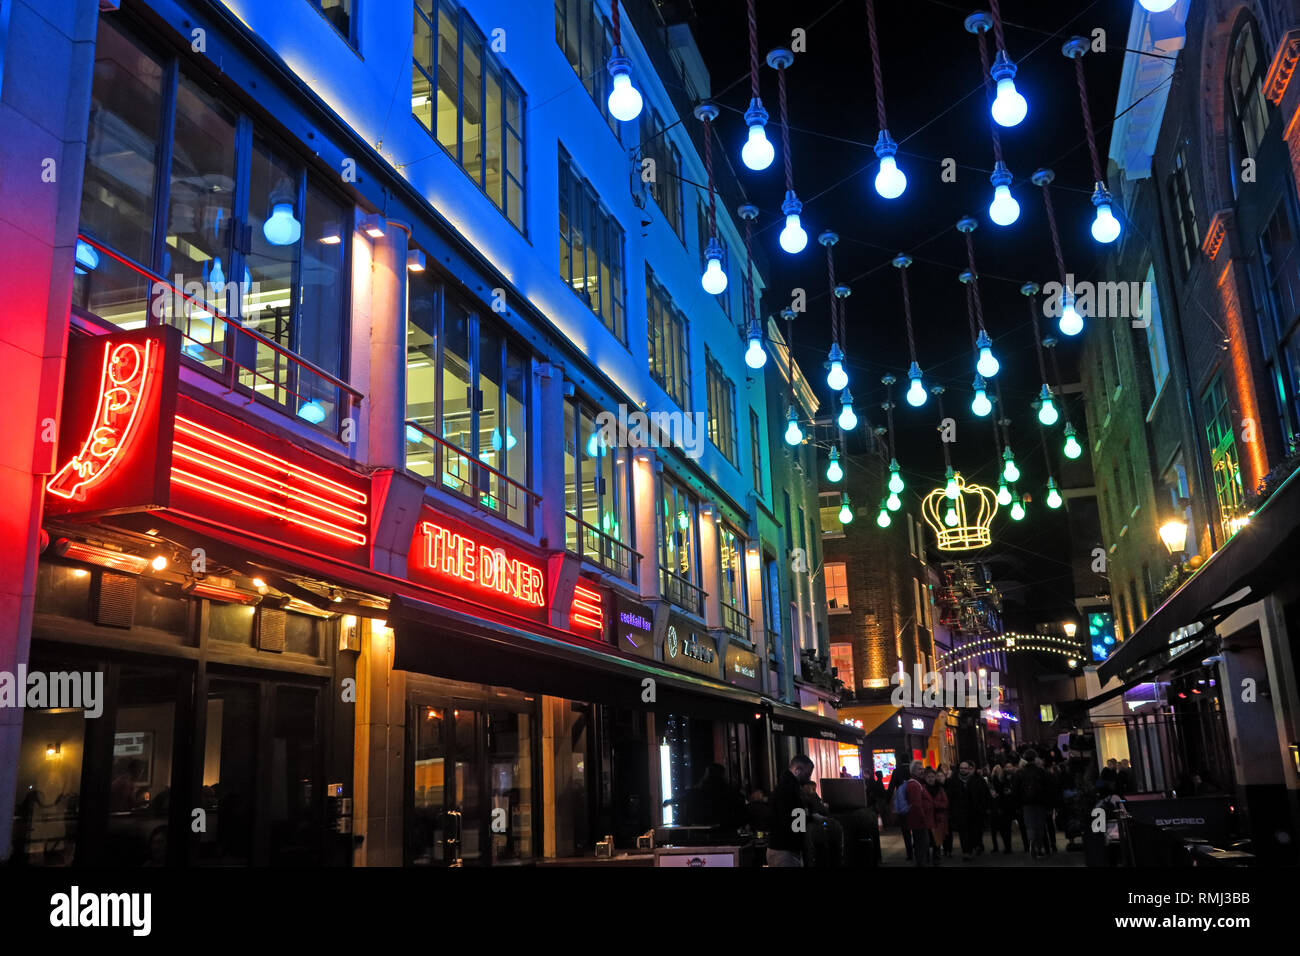 Carnaby Street, City of Westminster, London, England, UK, W1F 9PS Stock Photo